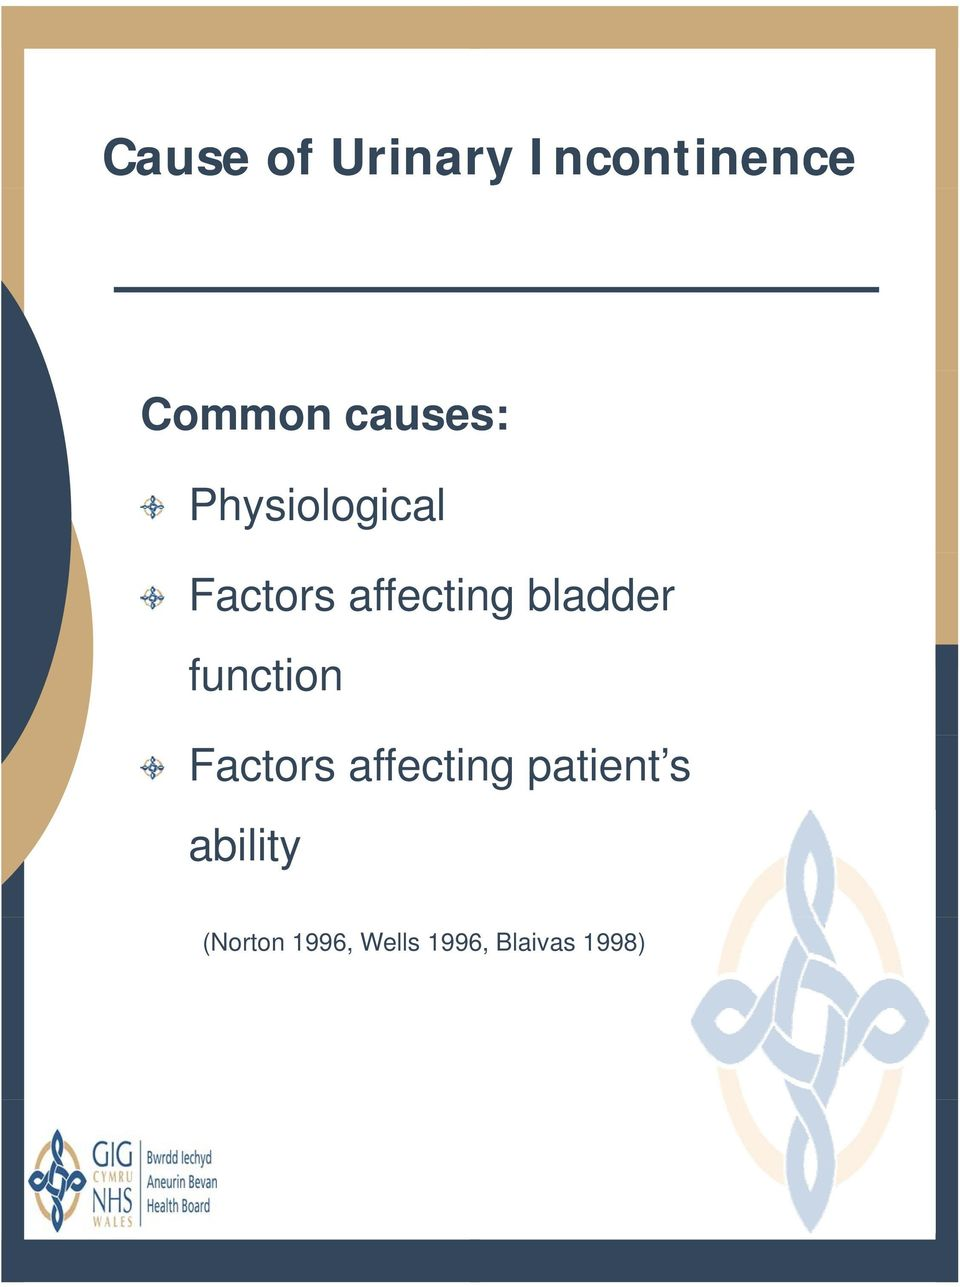 bladder function Factors affecting patient